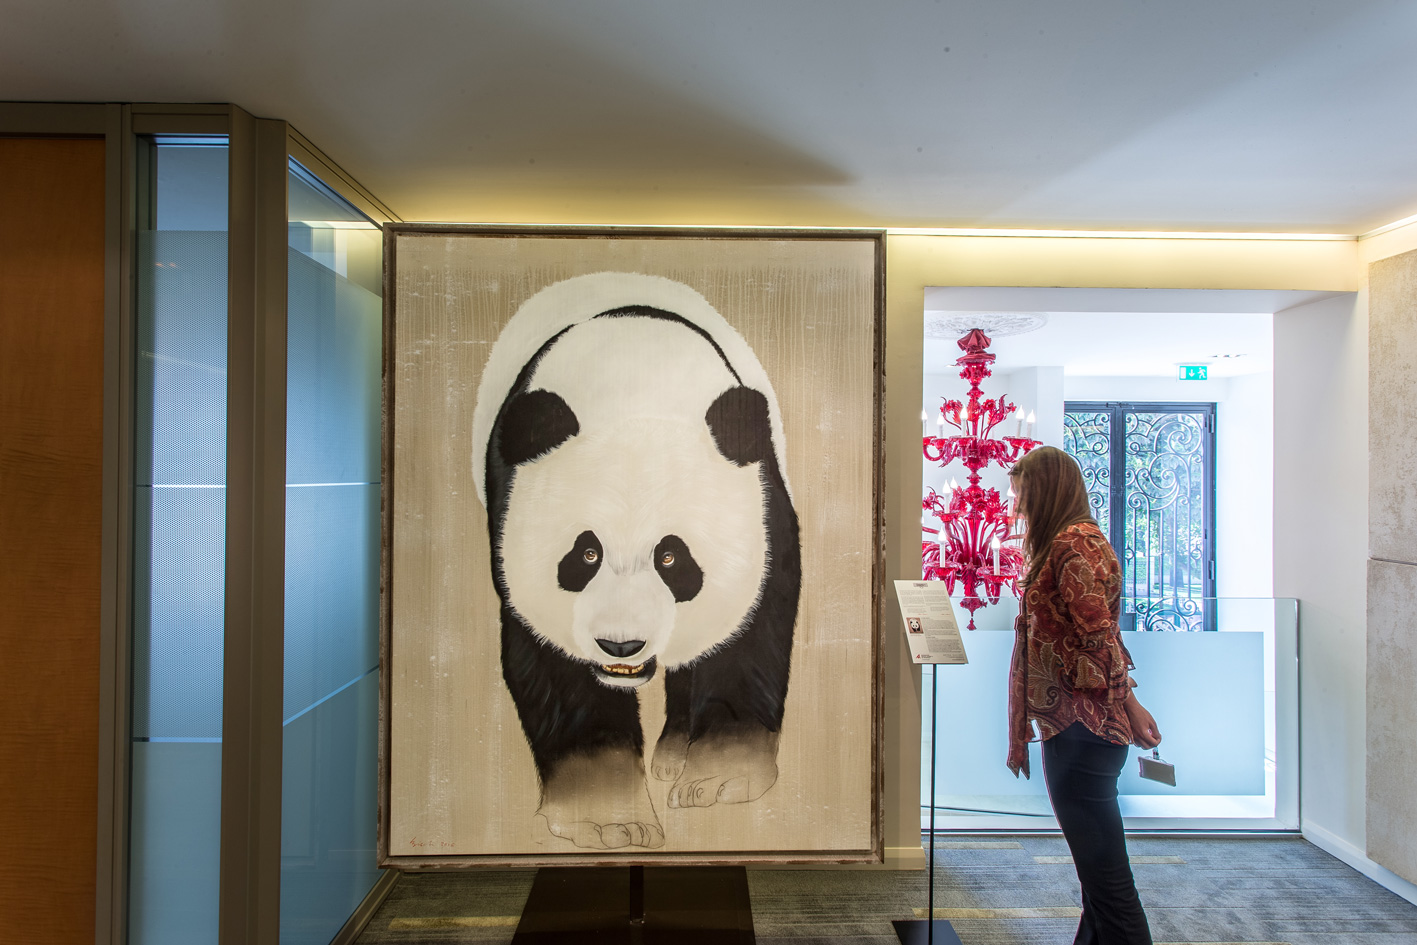 BARCLAY`S BANK panda%20giant%20ailuropoda%20melanoleuca%20threatened%20endangered%20extinction Thierry Bisch painter animals painting art decoration hotel design interior luxury nature biodiversity conservation